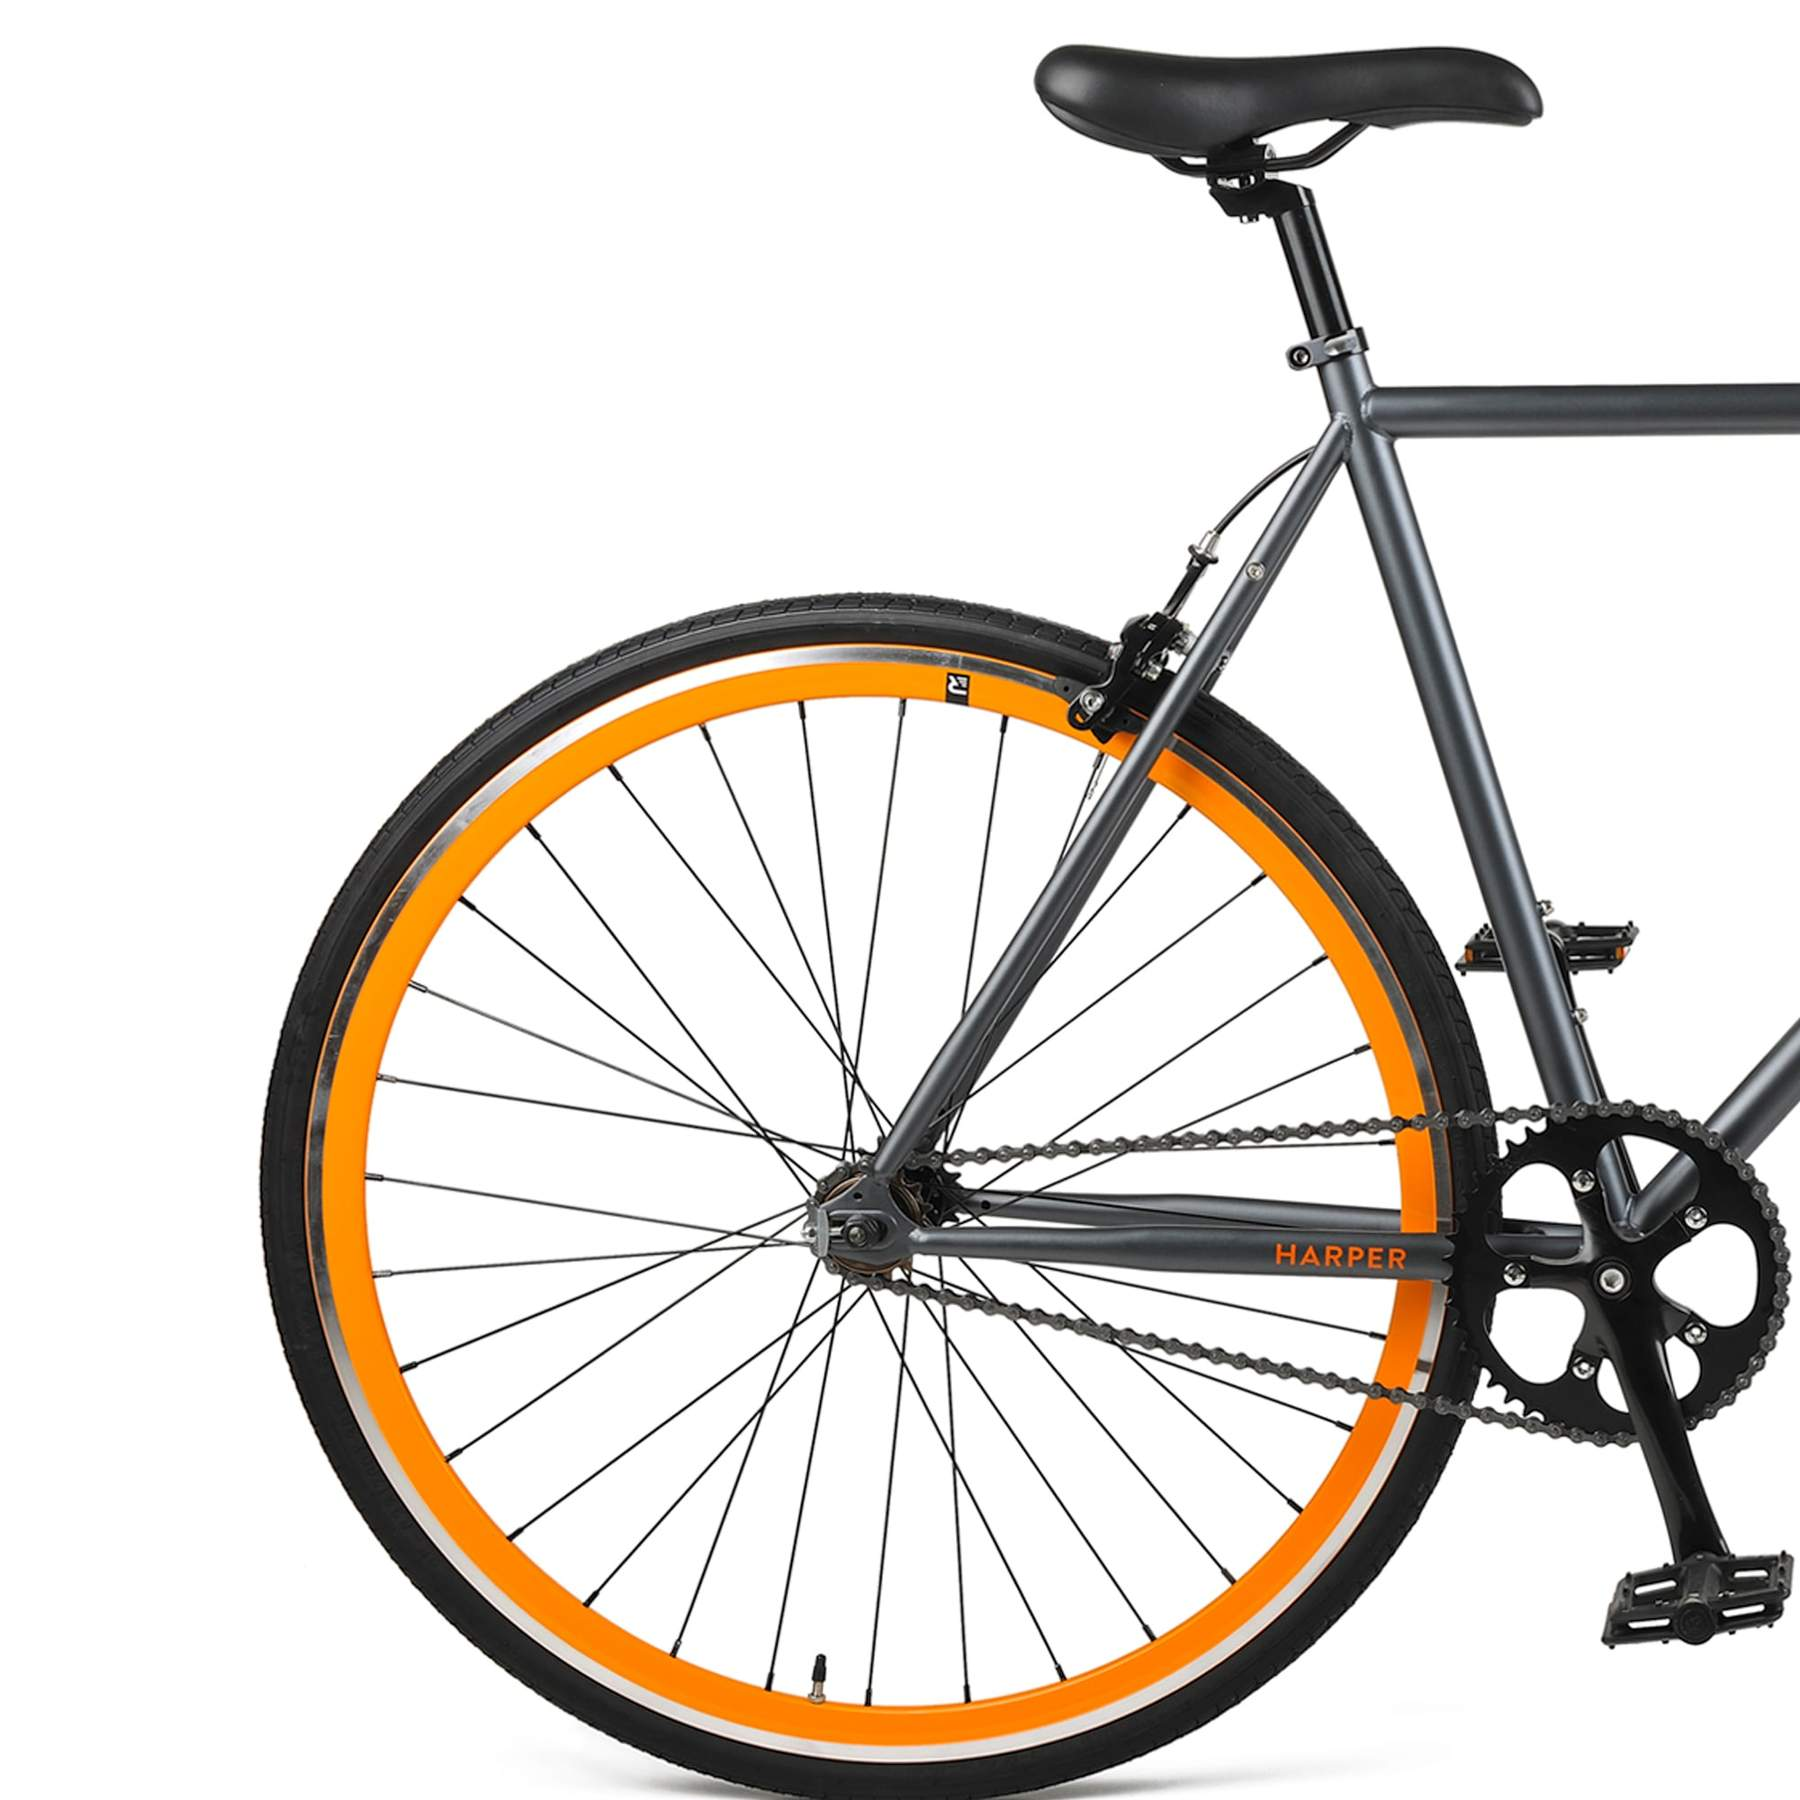 HARPER SINGLE SPEED/FG - Graphite/Orange